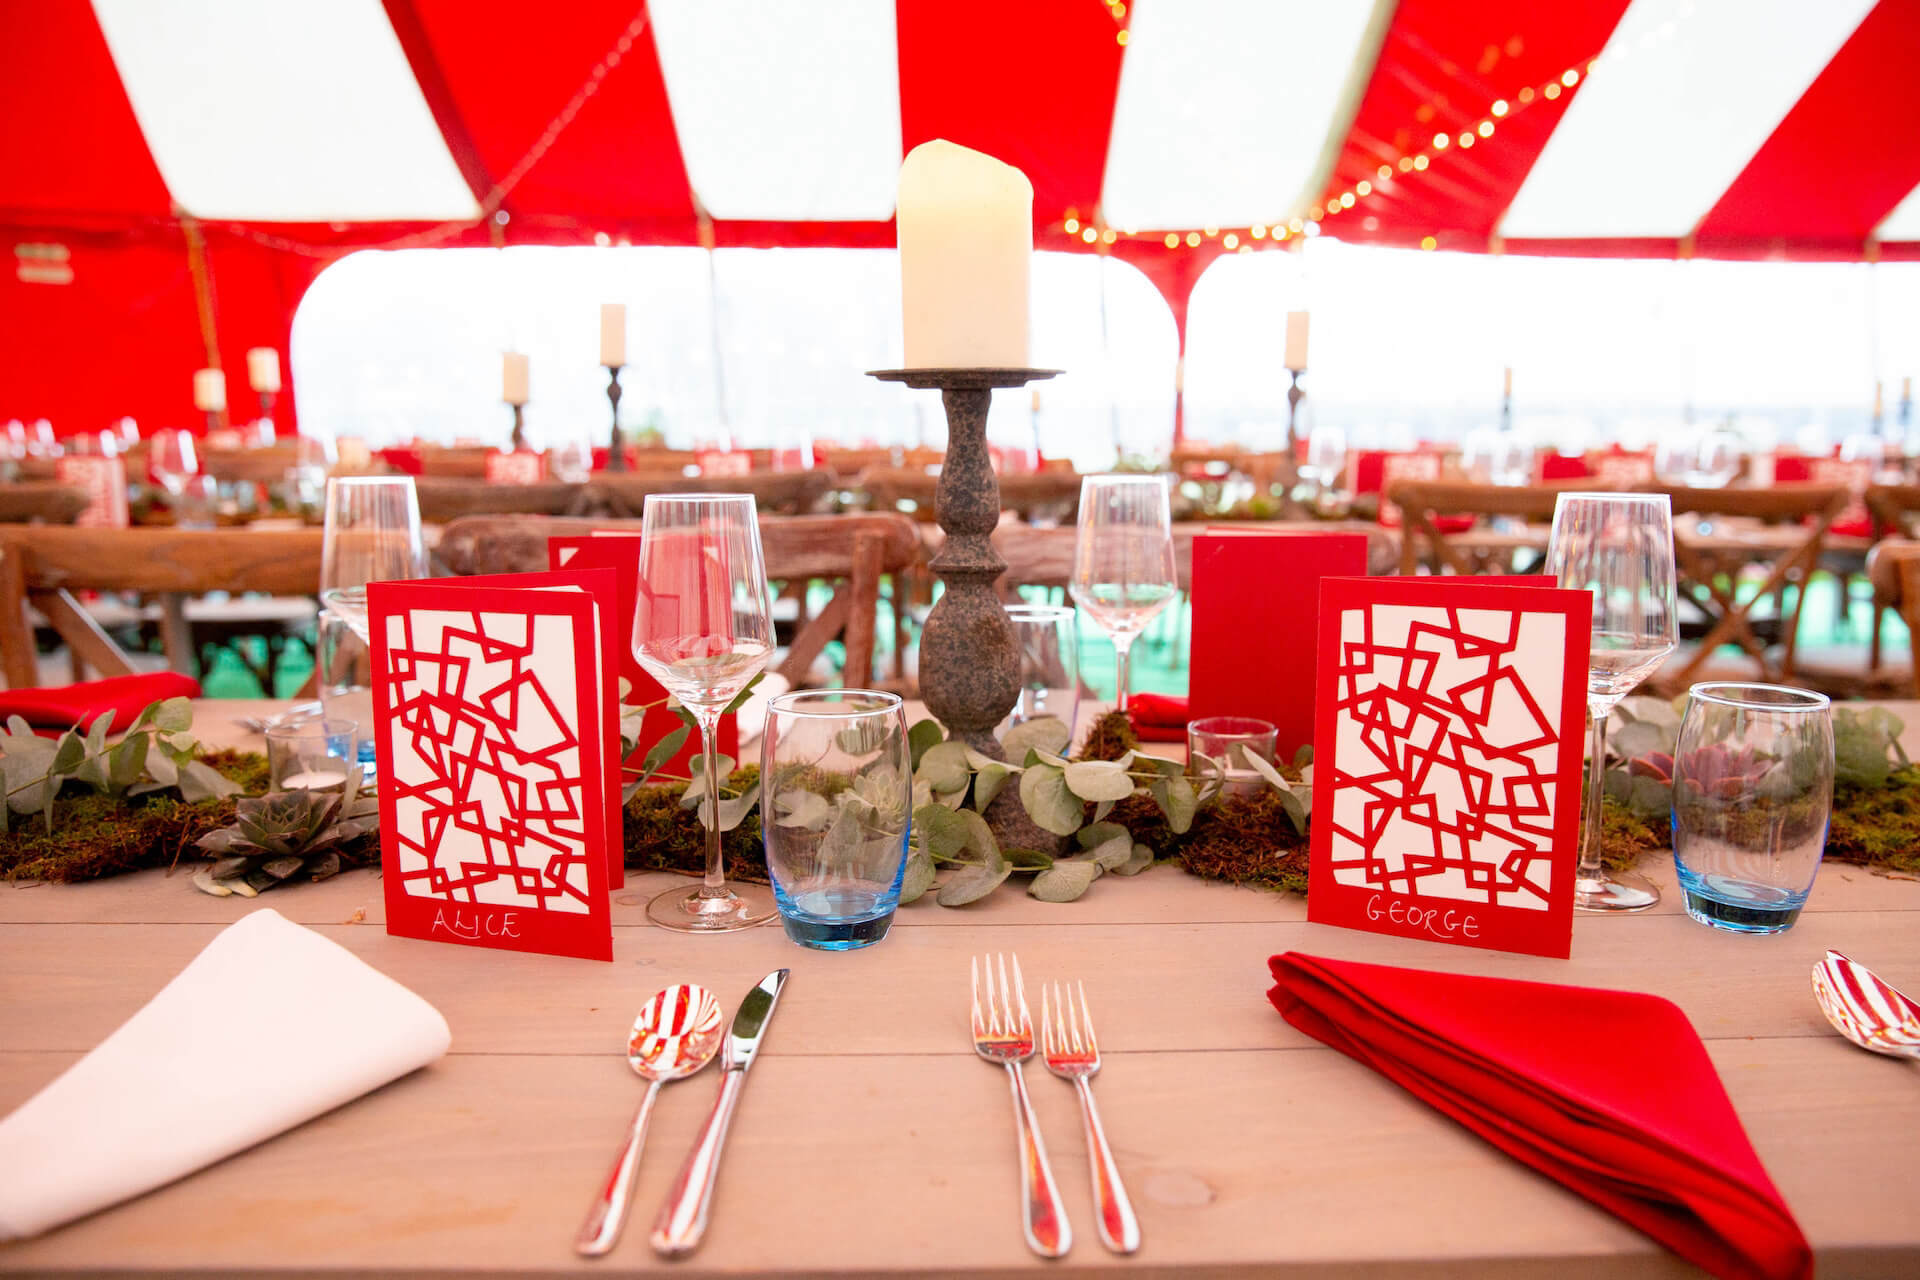 Best red and white tablescape in wedding marquee